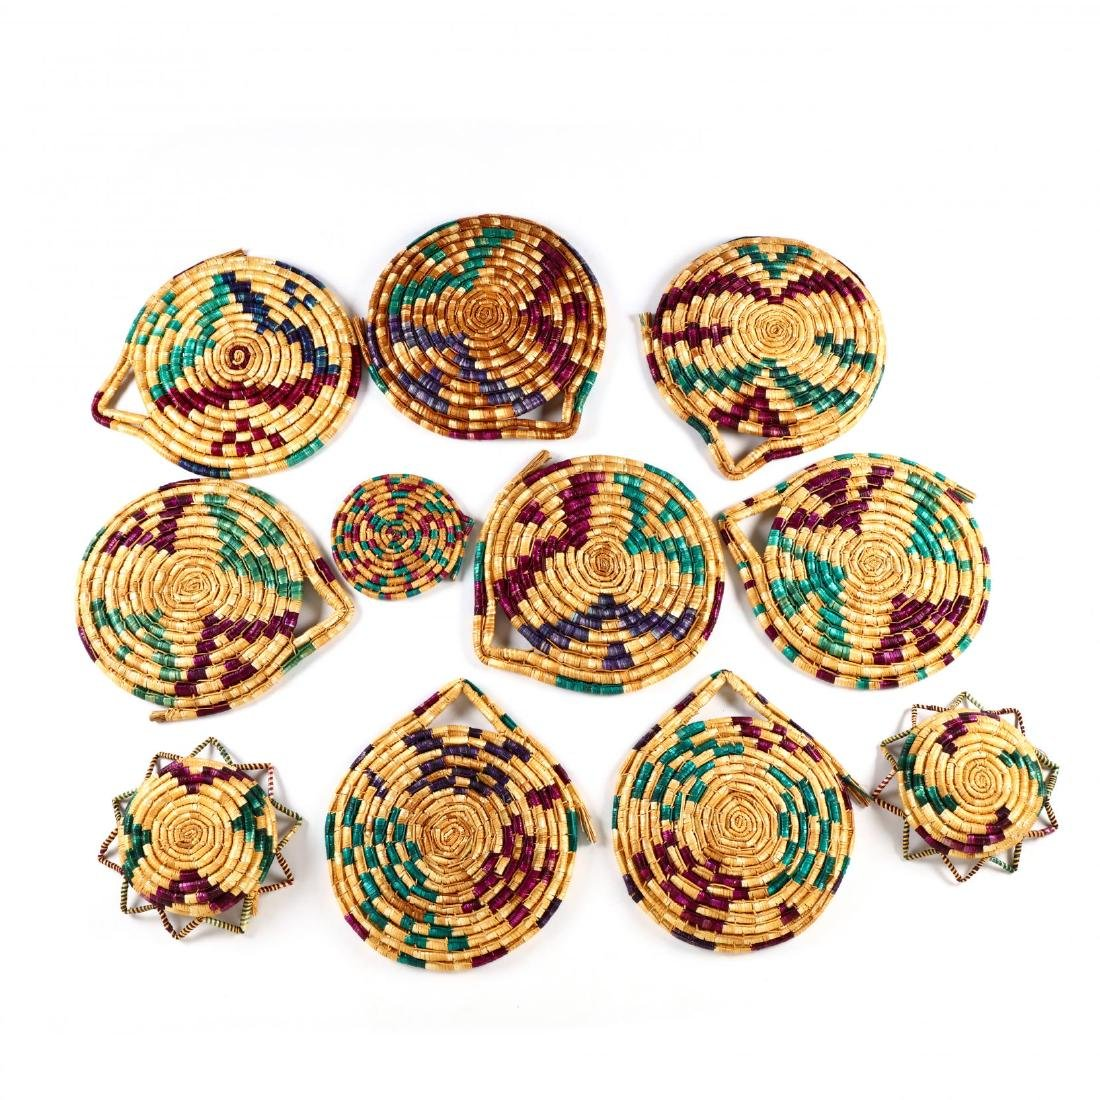 Set of Decorative Woven Straw Table Mats - 8